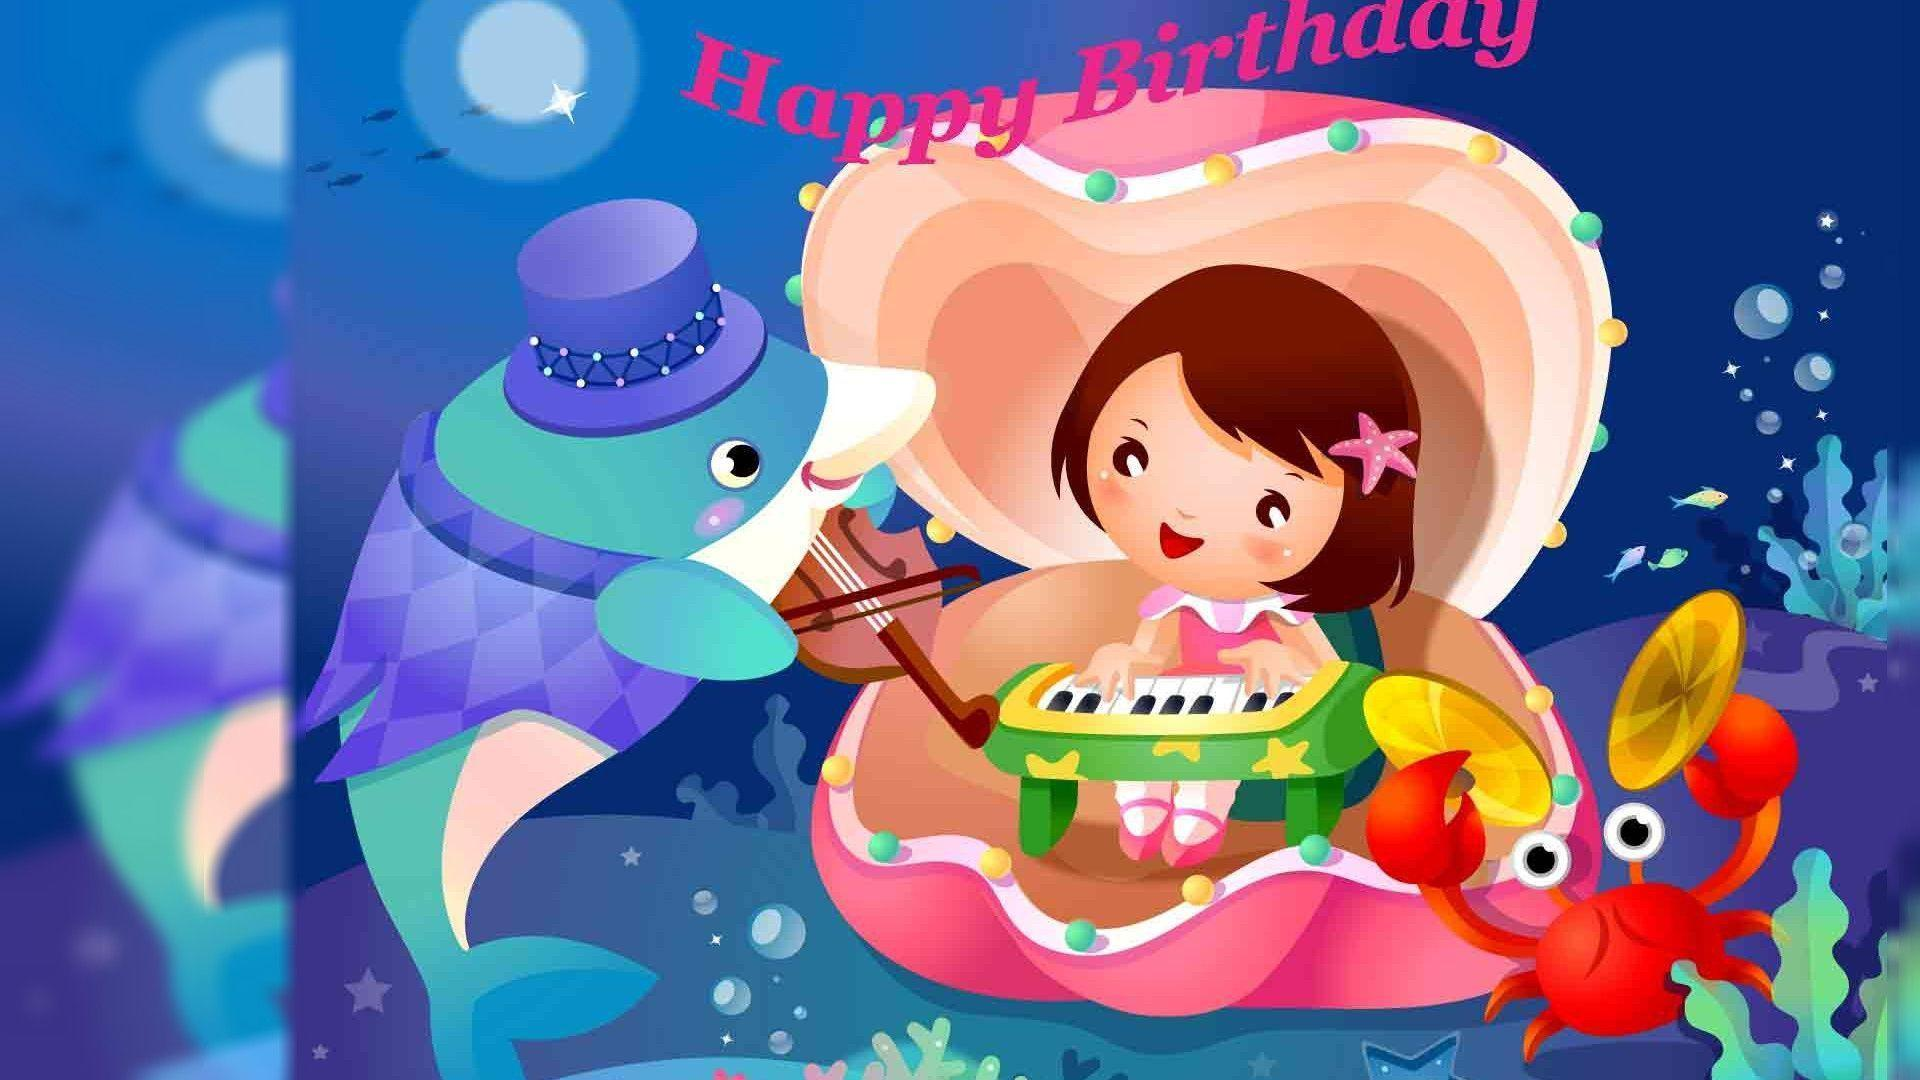 Happy Birthday Wallpapers Free Wallpaper Cave